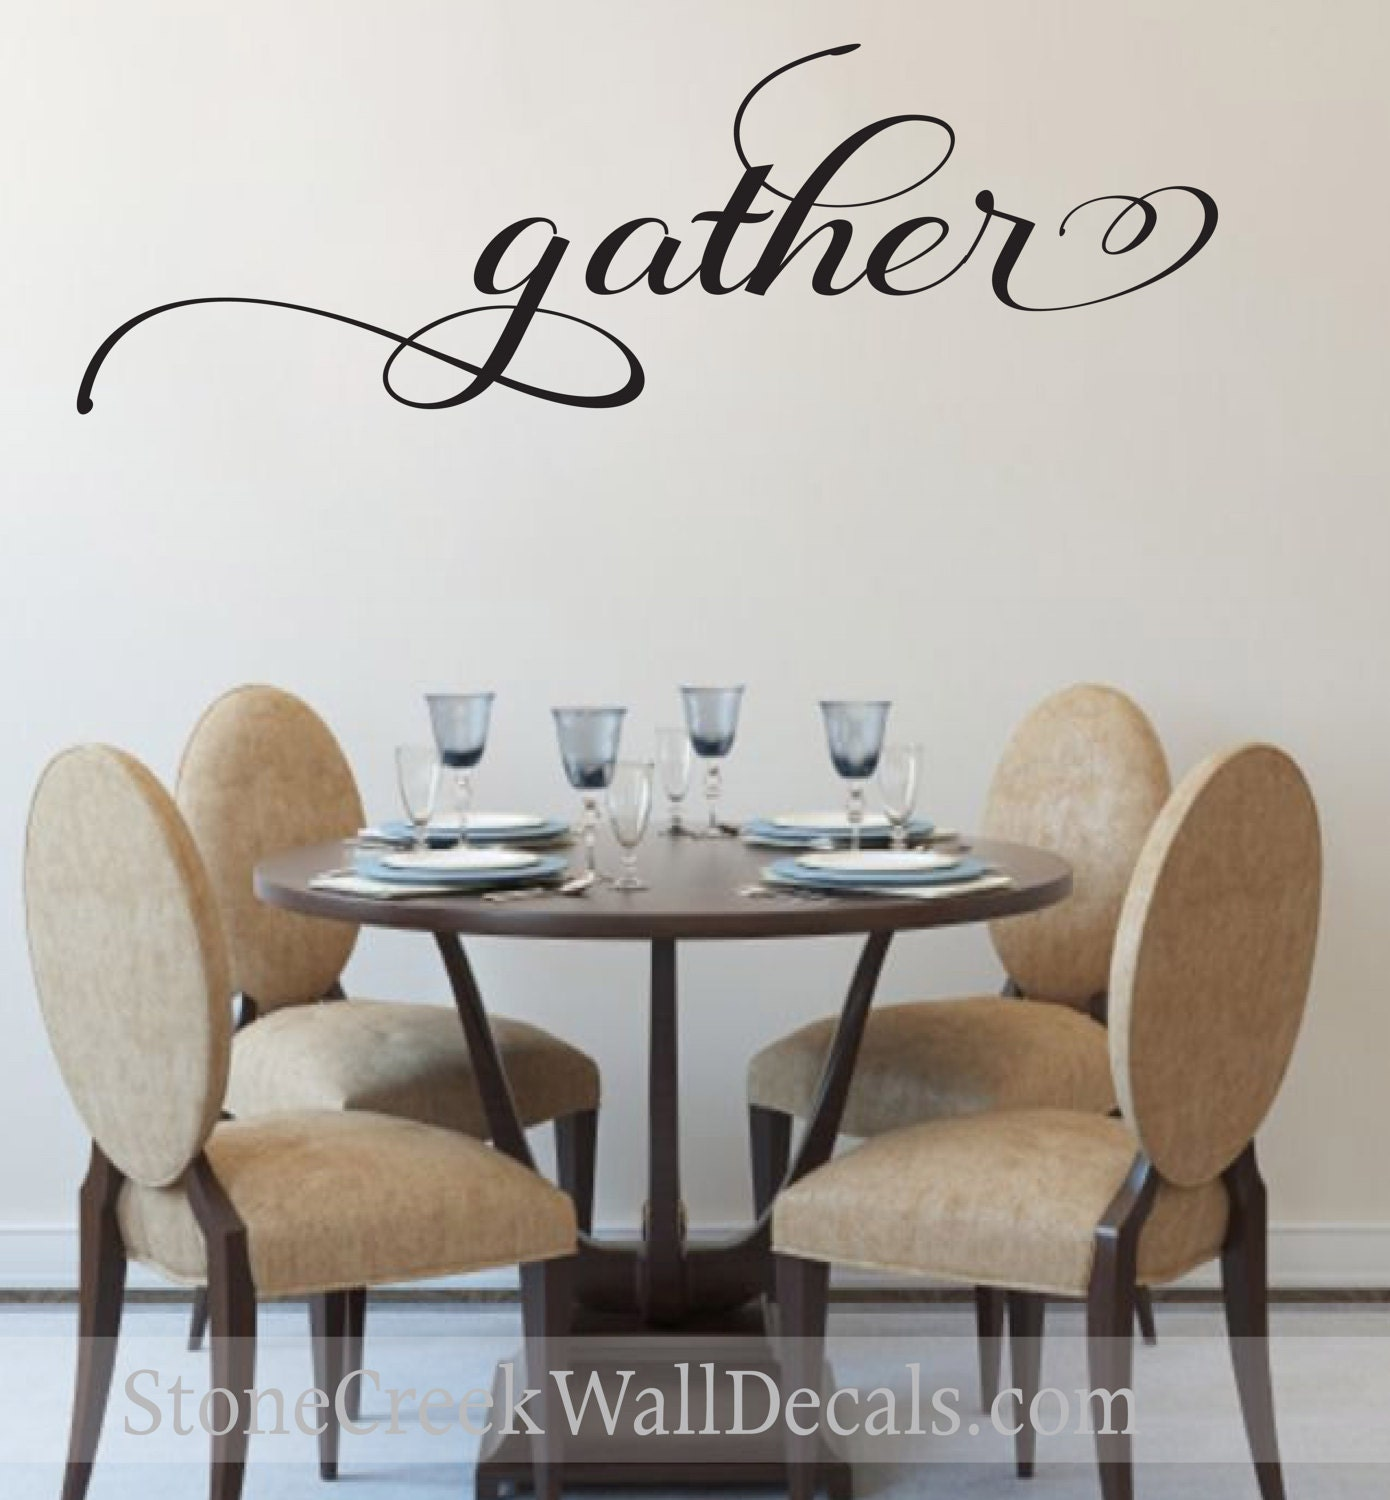 gather wall decal living room dining room family decor